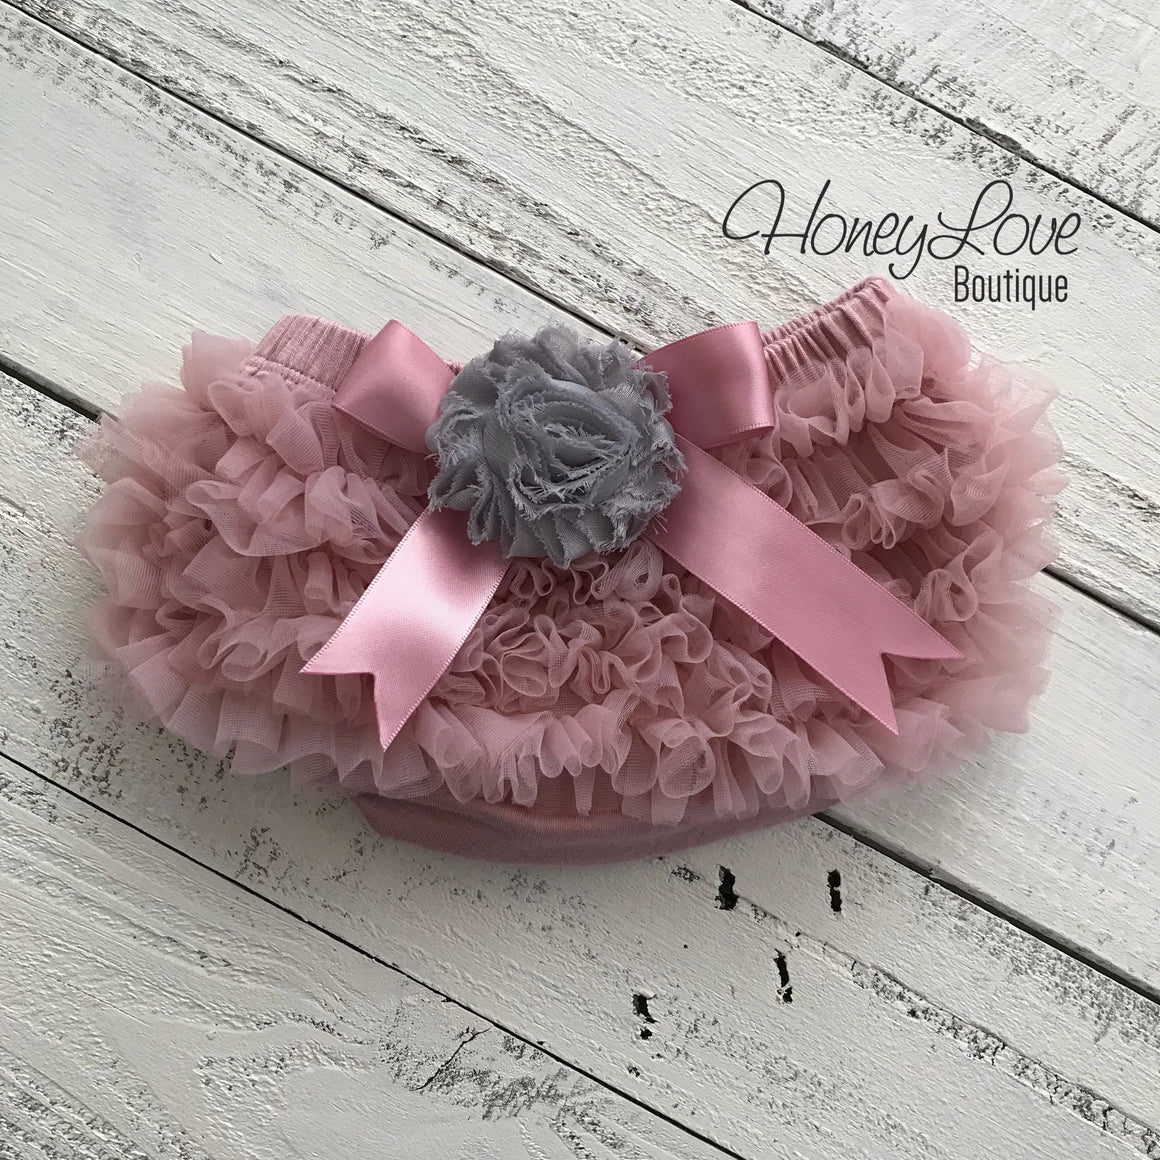 Vintage Pink ruffle bottom bloomers and pearl rhinestone flower headband - embellished gray flower - HoneyLoveBoutique